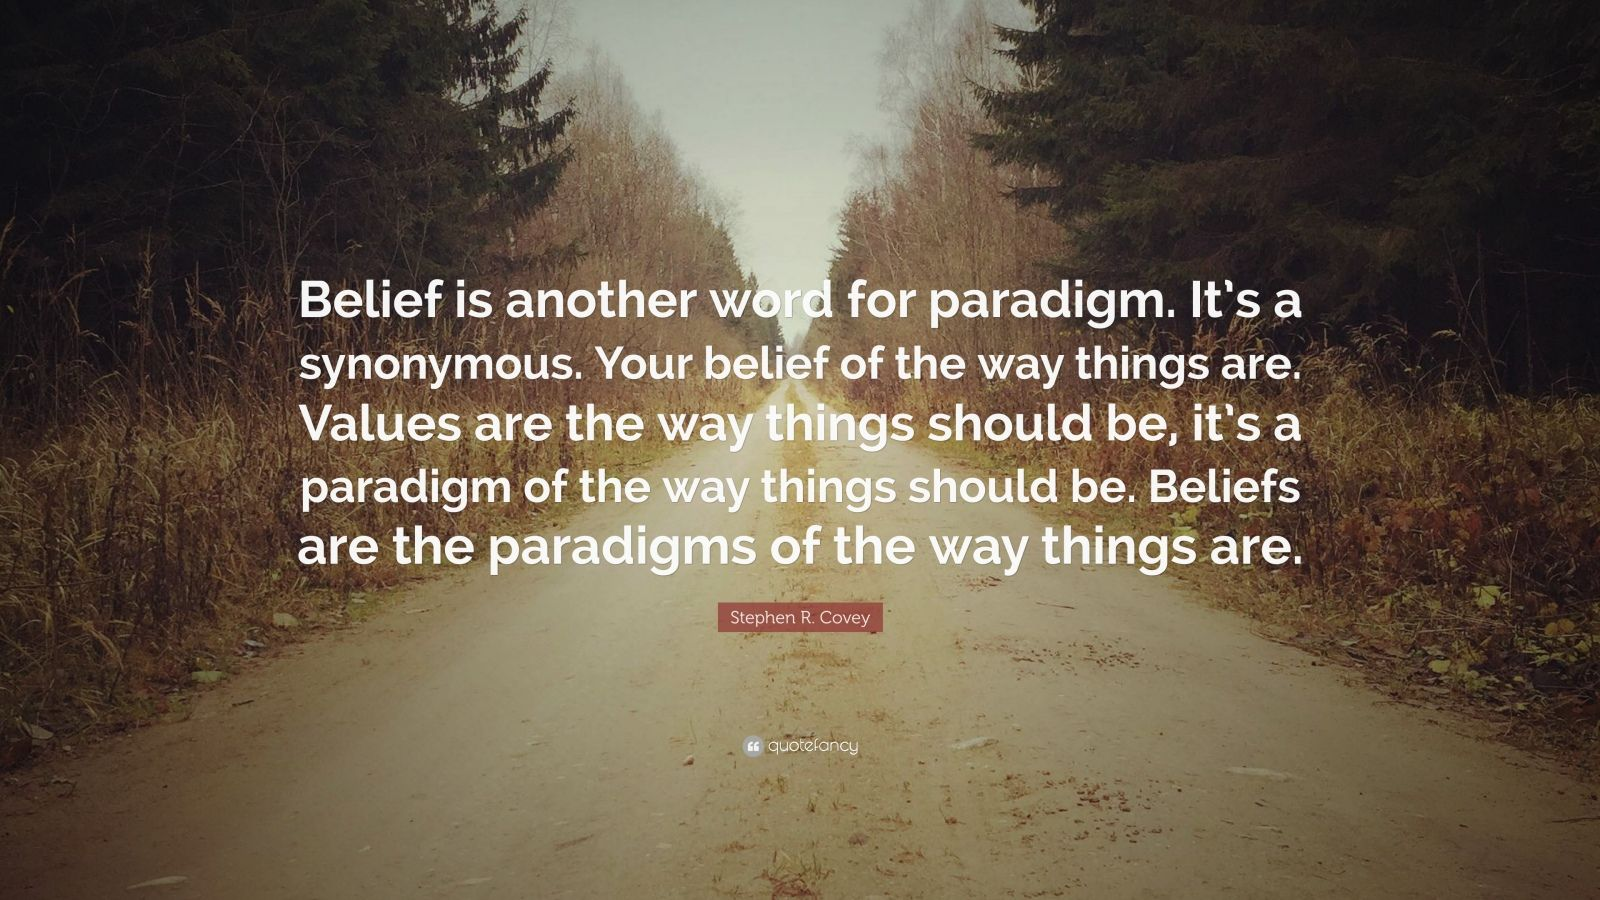 "Stephen R. Covey Quote: ""Belief is another word for paradigm. It's a synonymous. Your belief of the way things are. Values are the way things should be, it's a paradigm of the way things should be. Beliefs are the paradigms of the way things are."""